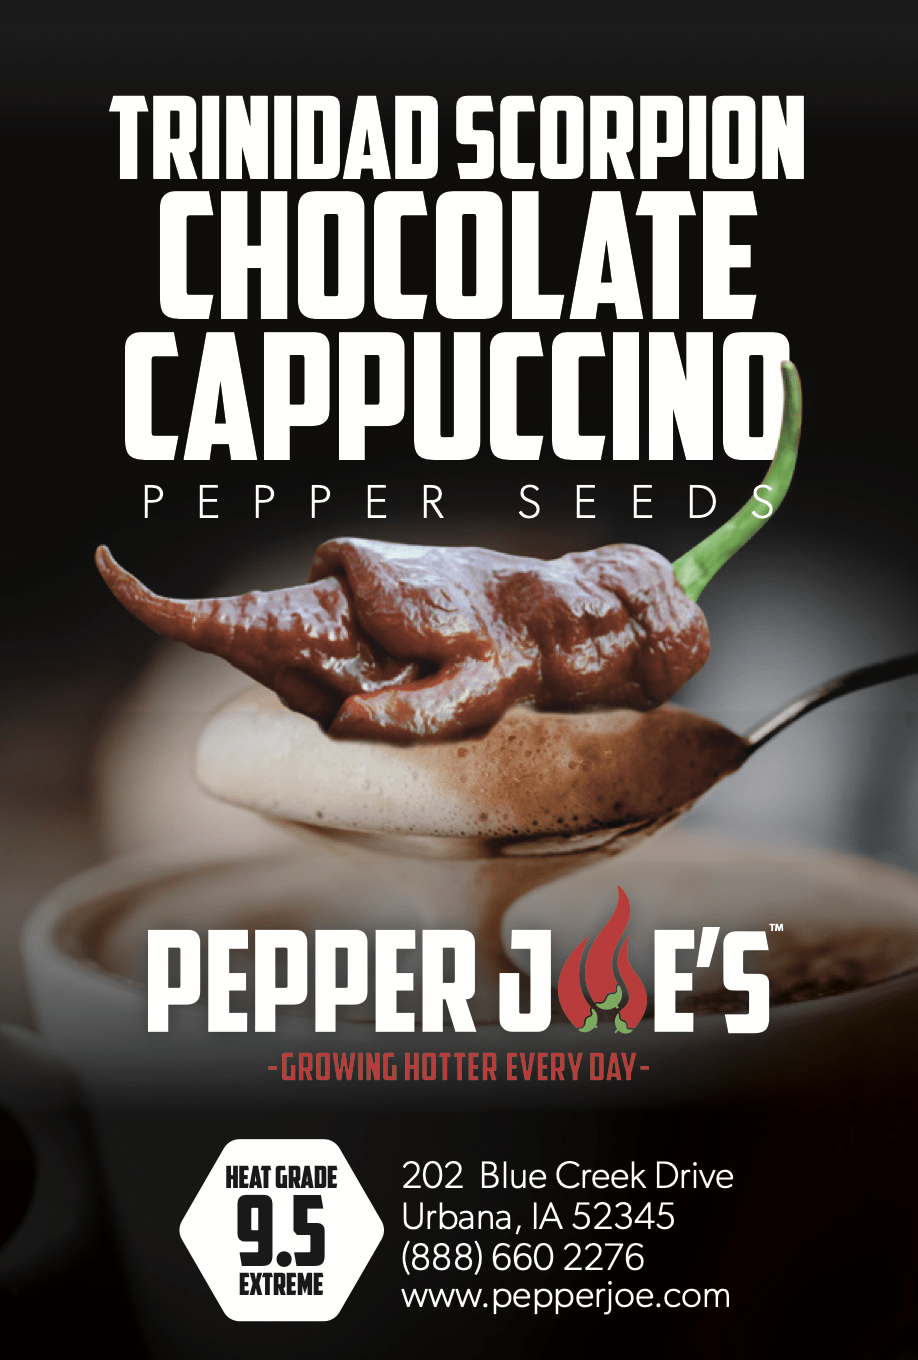 Trinidad Scorpion Chocolate Cappuccino - Hot Pepper - Pepper Joe's